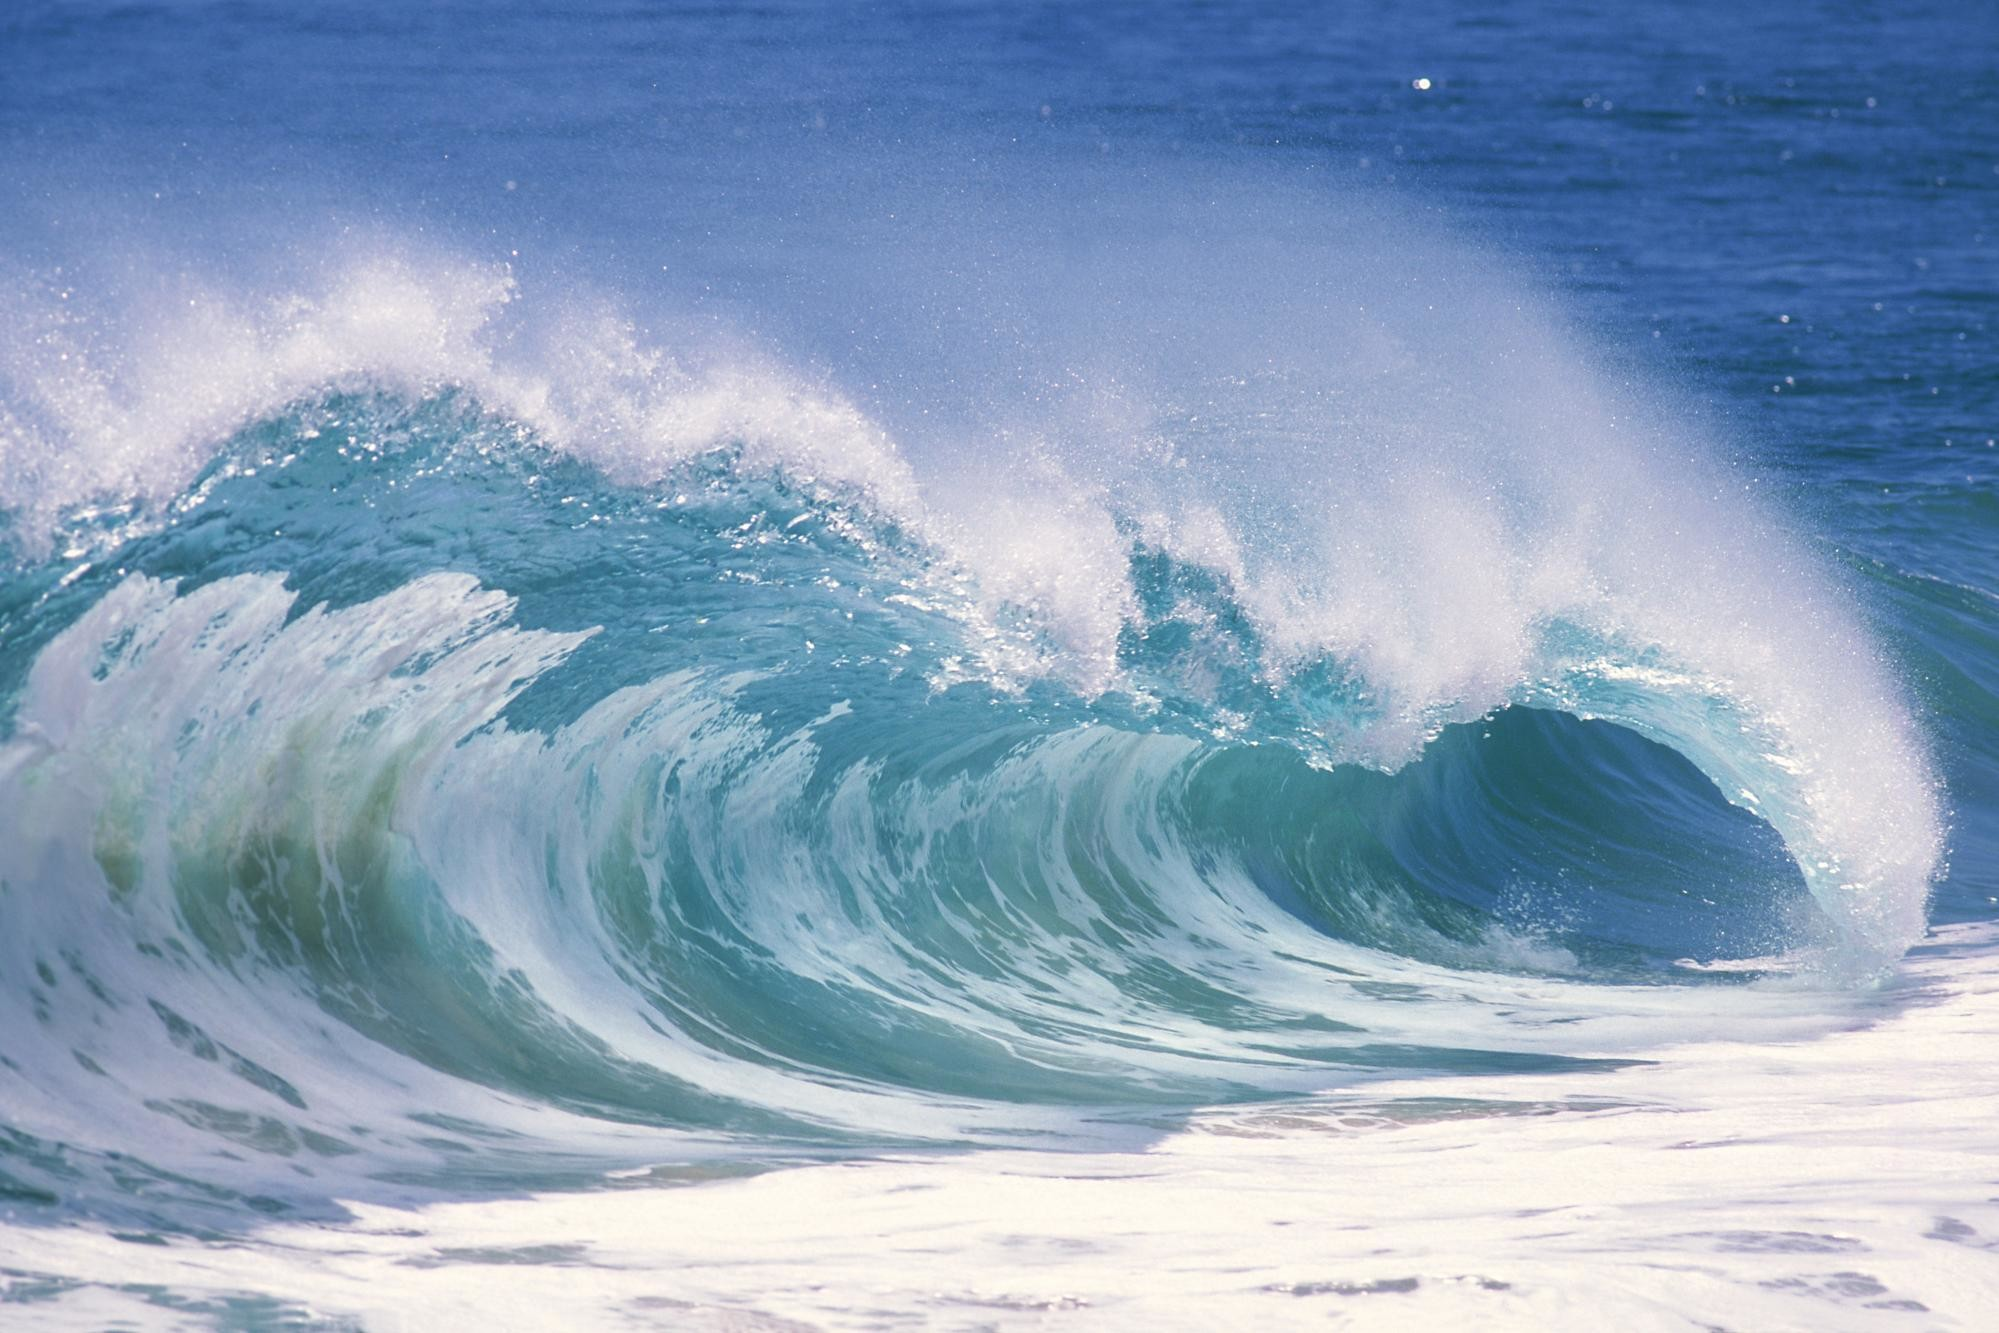 1999x1333 Ocean Waves Wallpaper Desktop Images & Pictures - Becuo